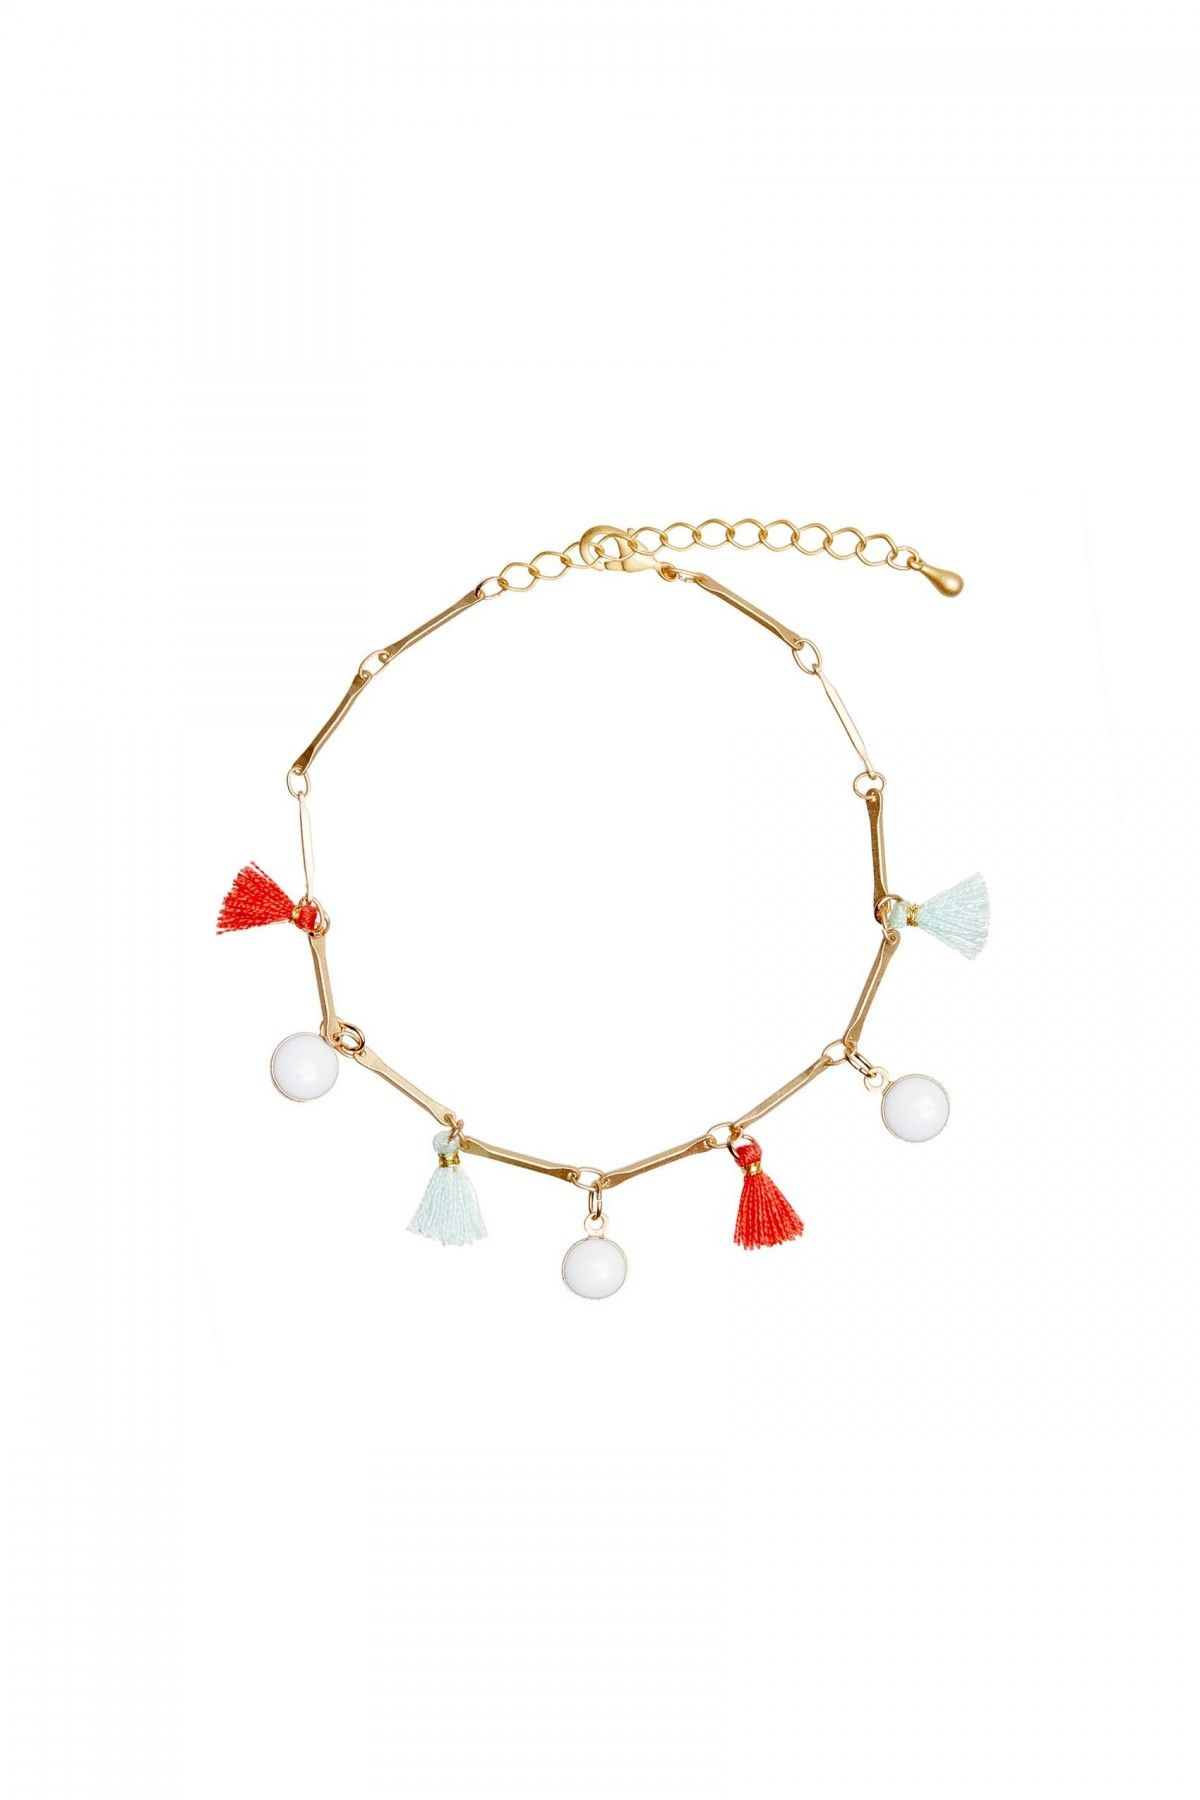 Cocktail Party Summer Bracelet